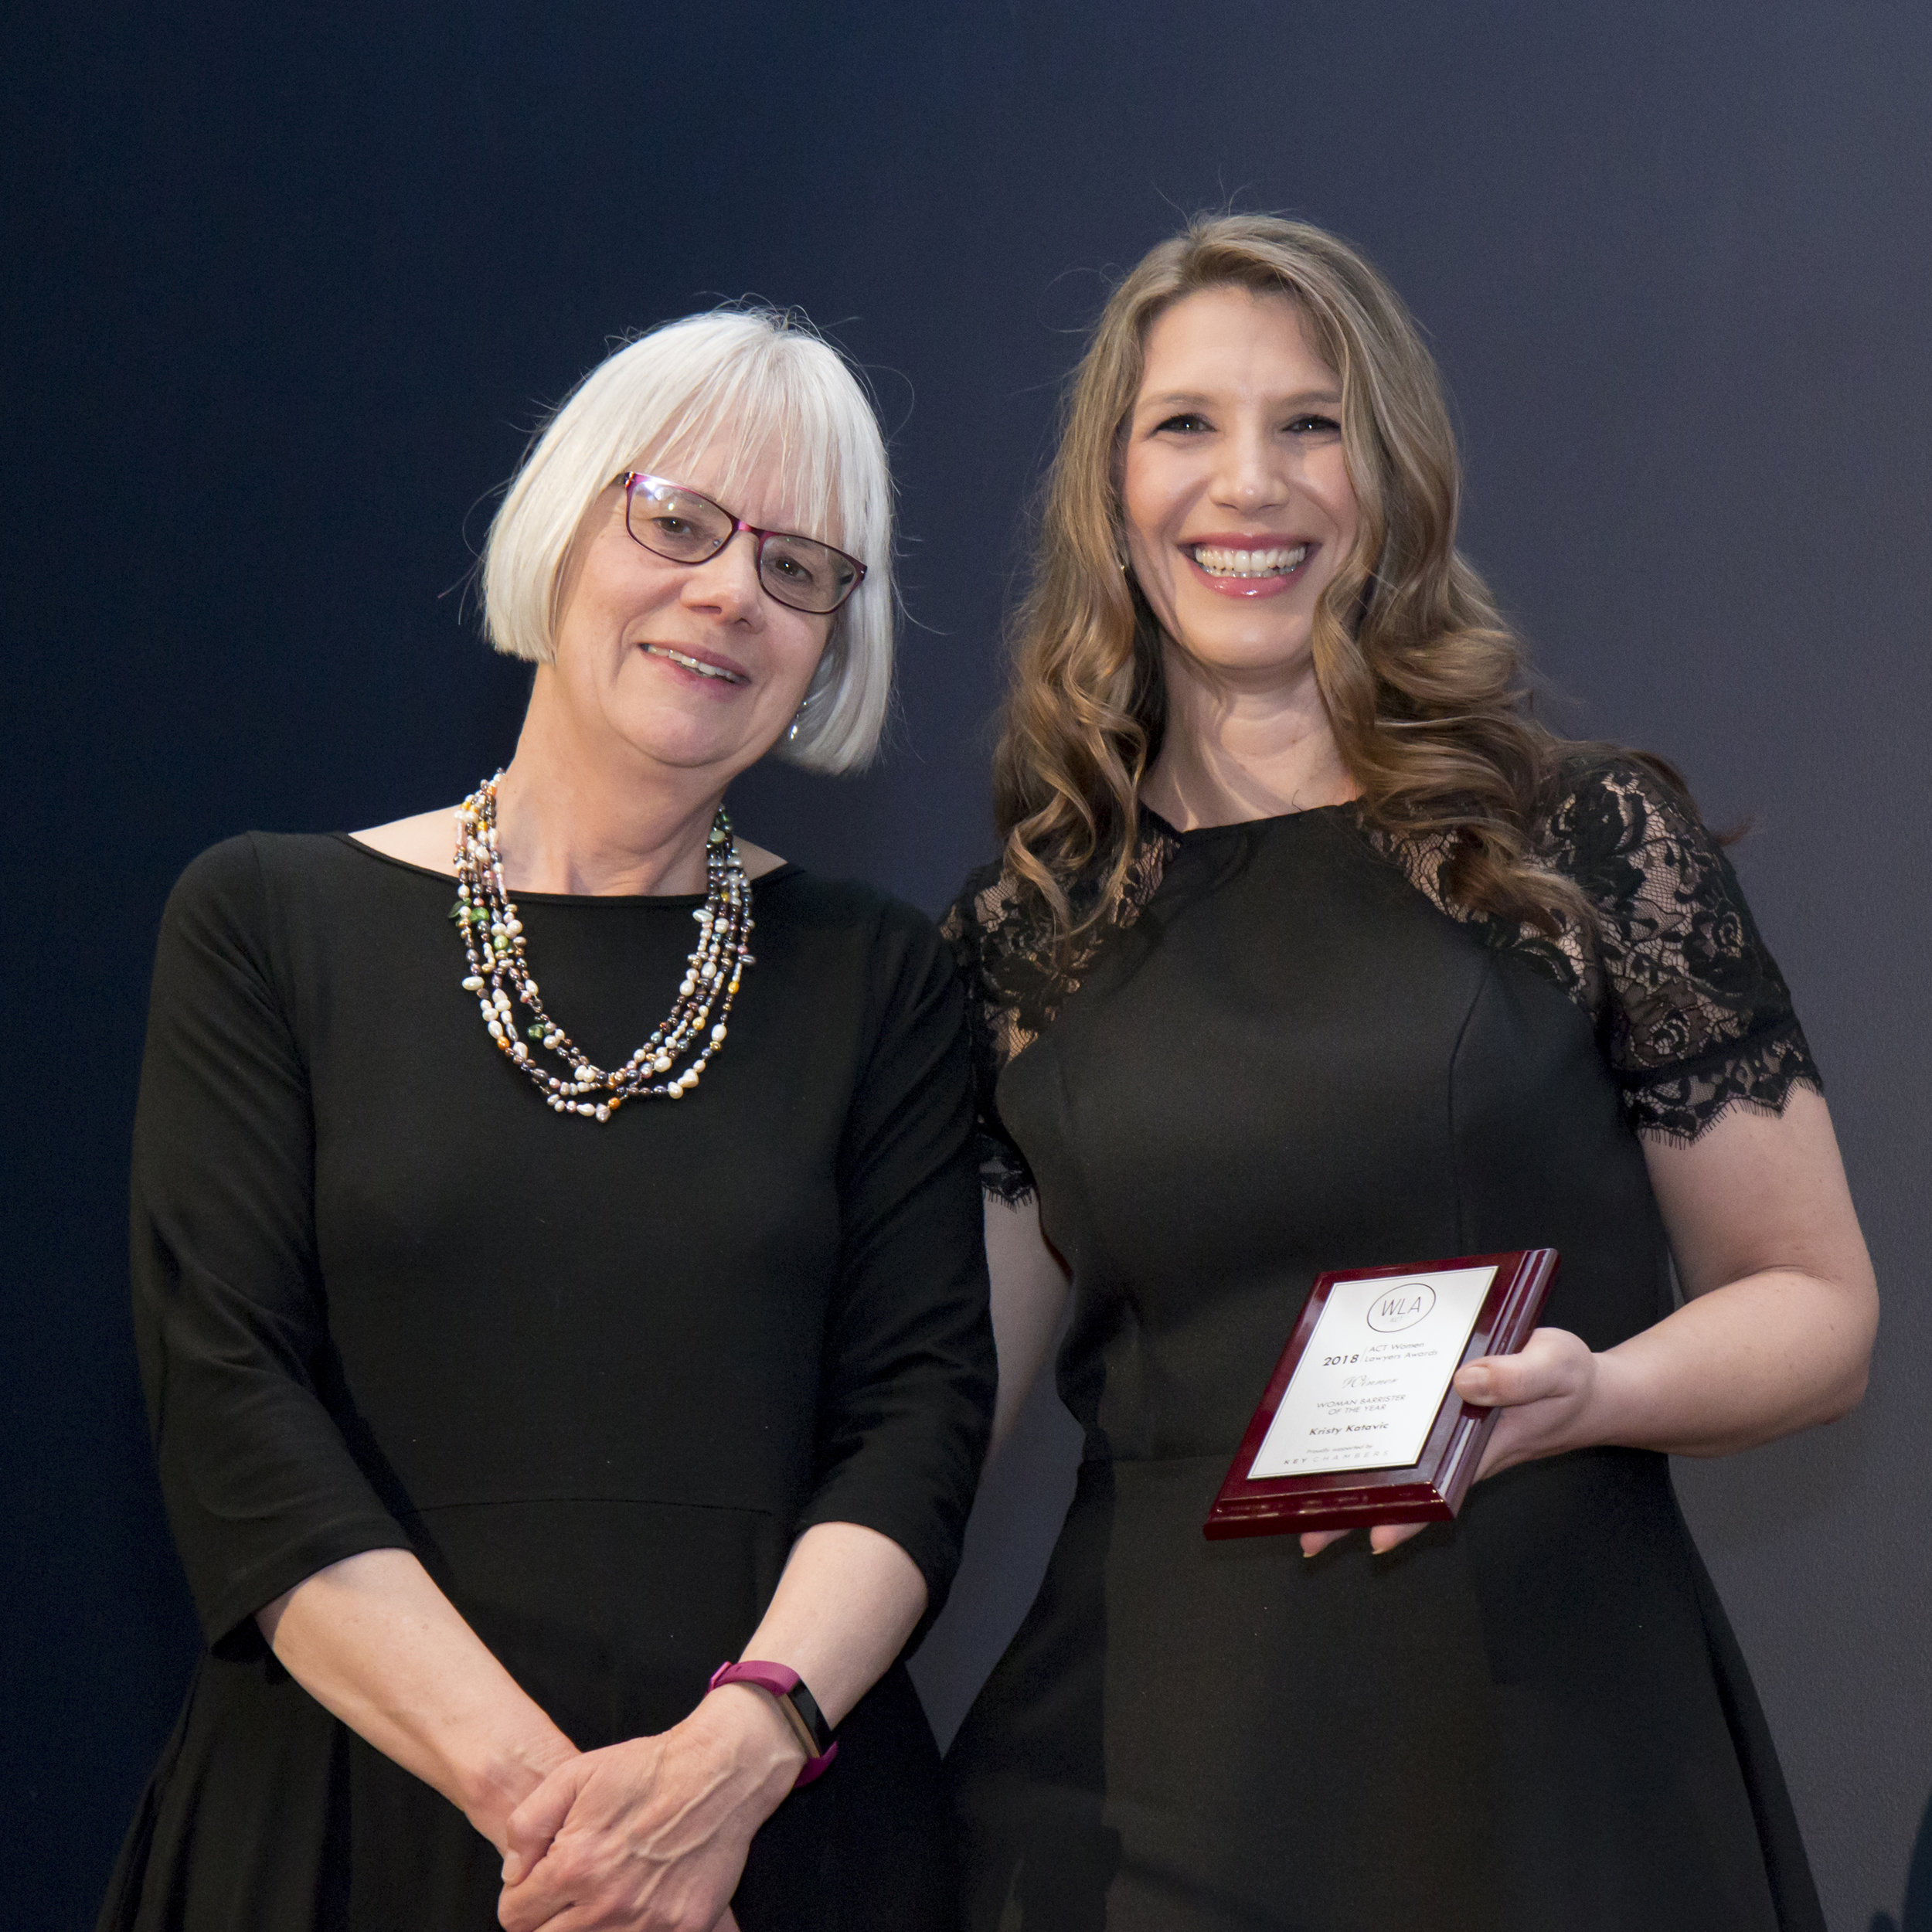 Kristy Katavic receiving her award from Justice Hilary Penfold